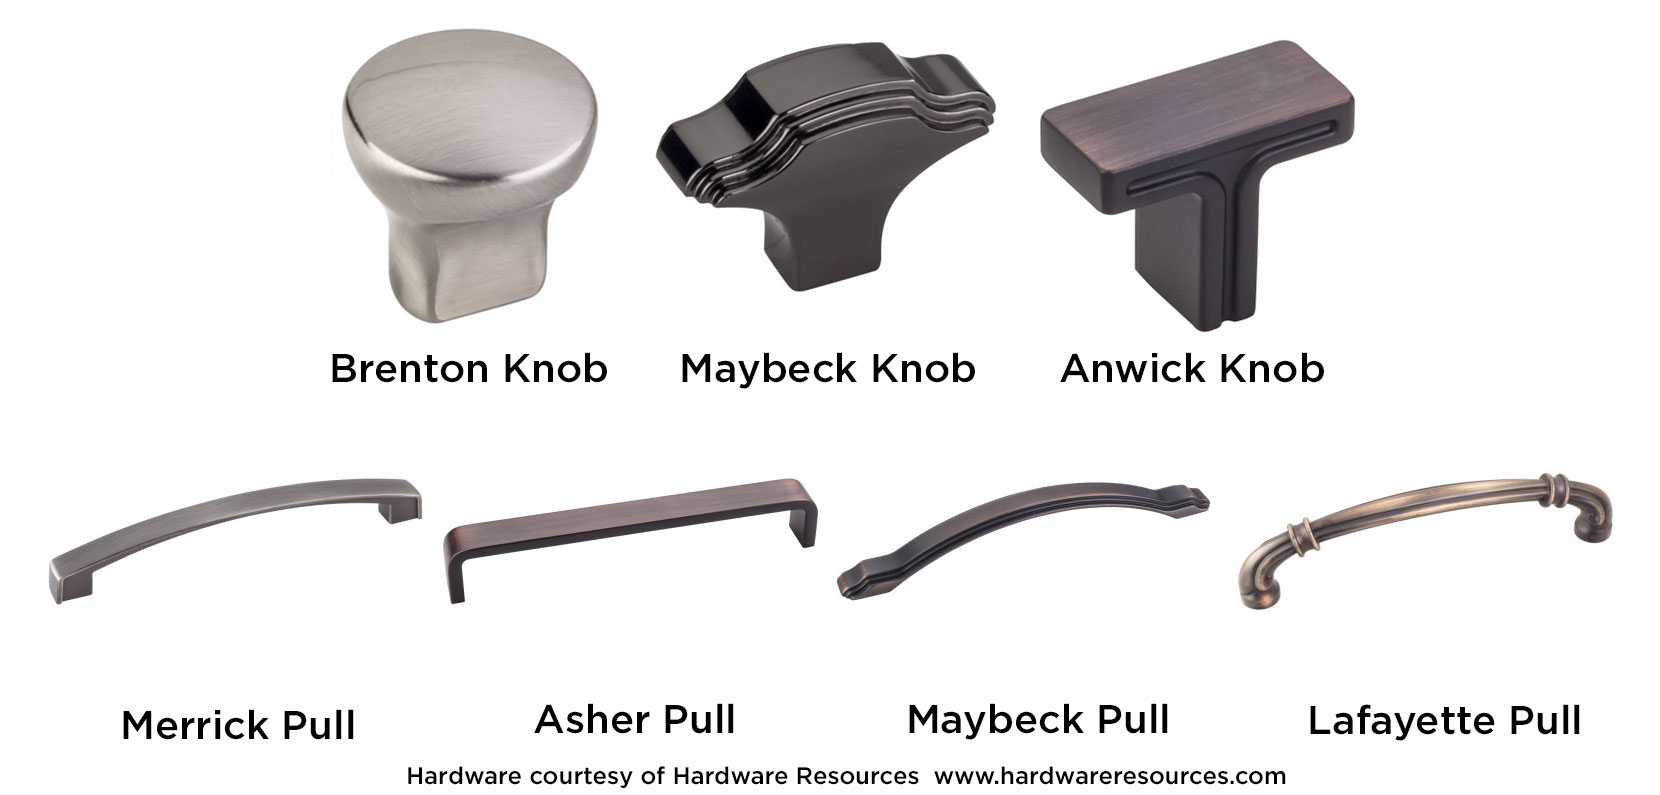 Cabinet Door Hardware Placement Guidelines - TaylorCraft Cabinet ...